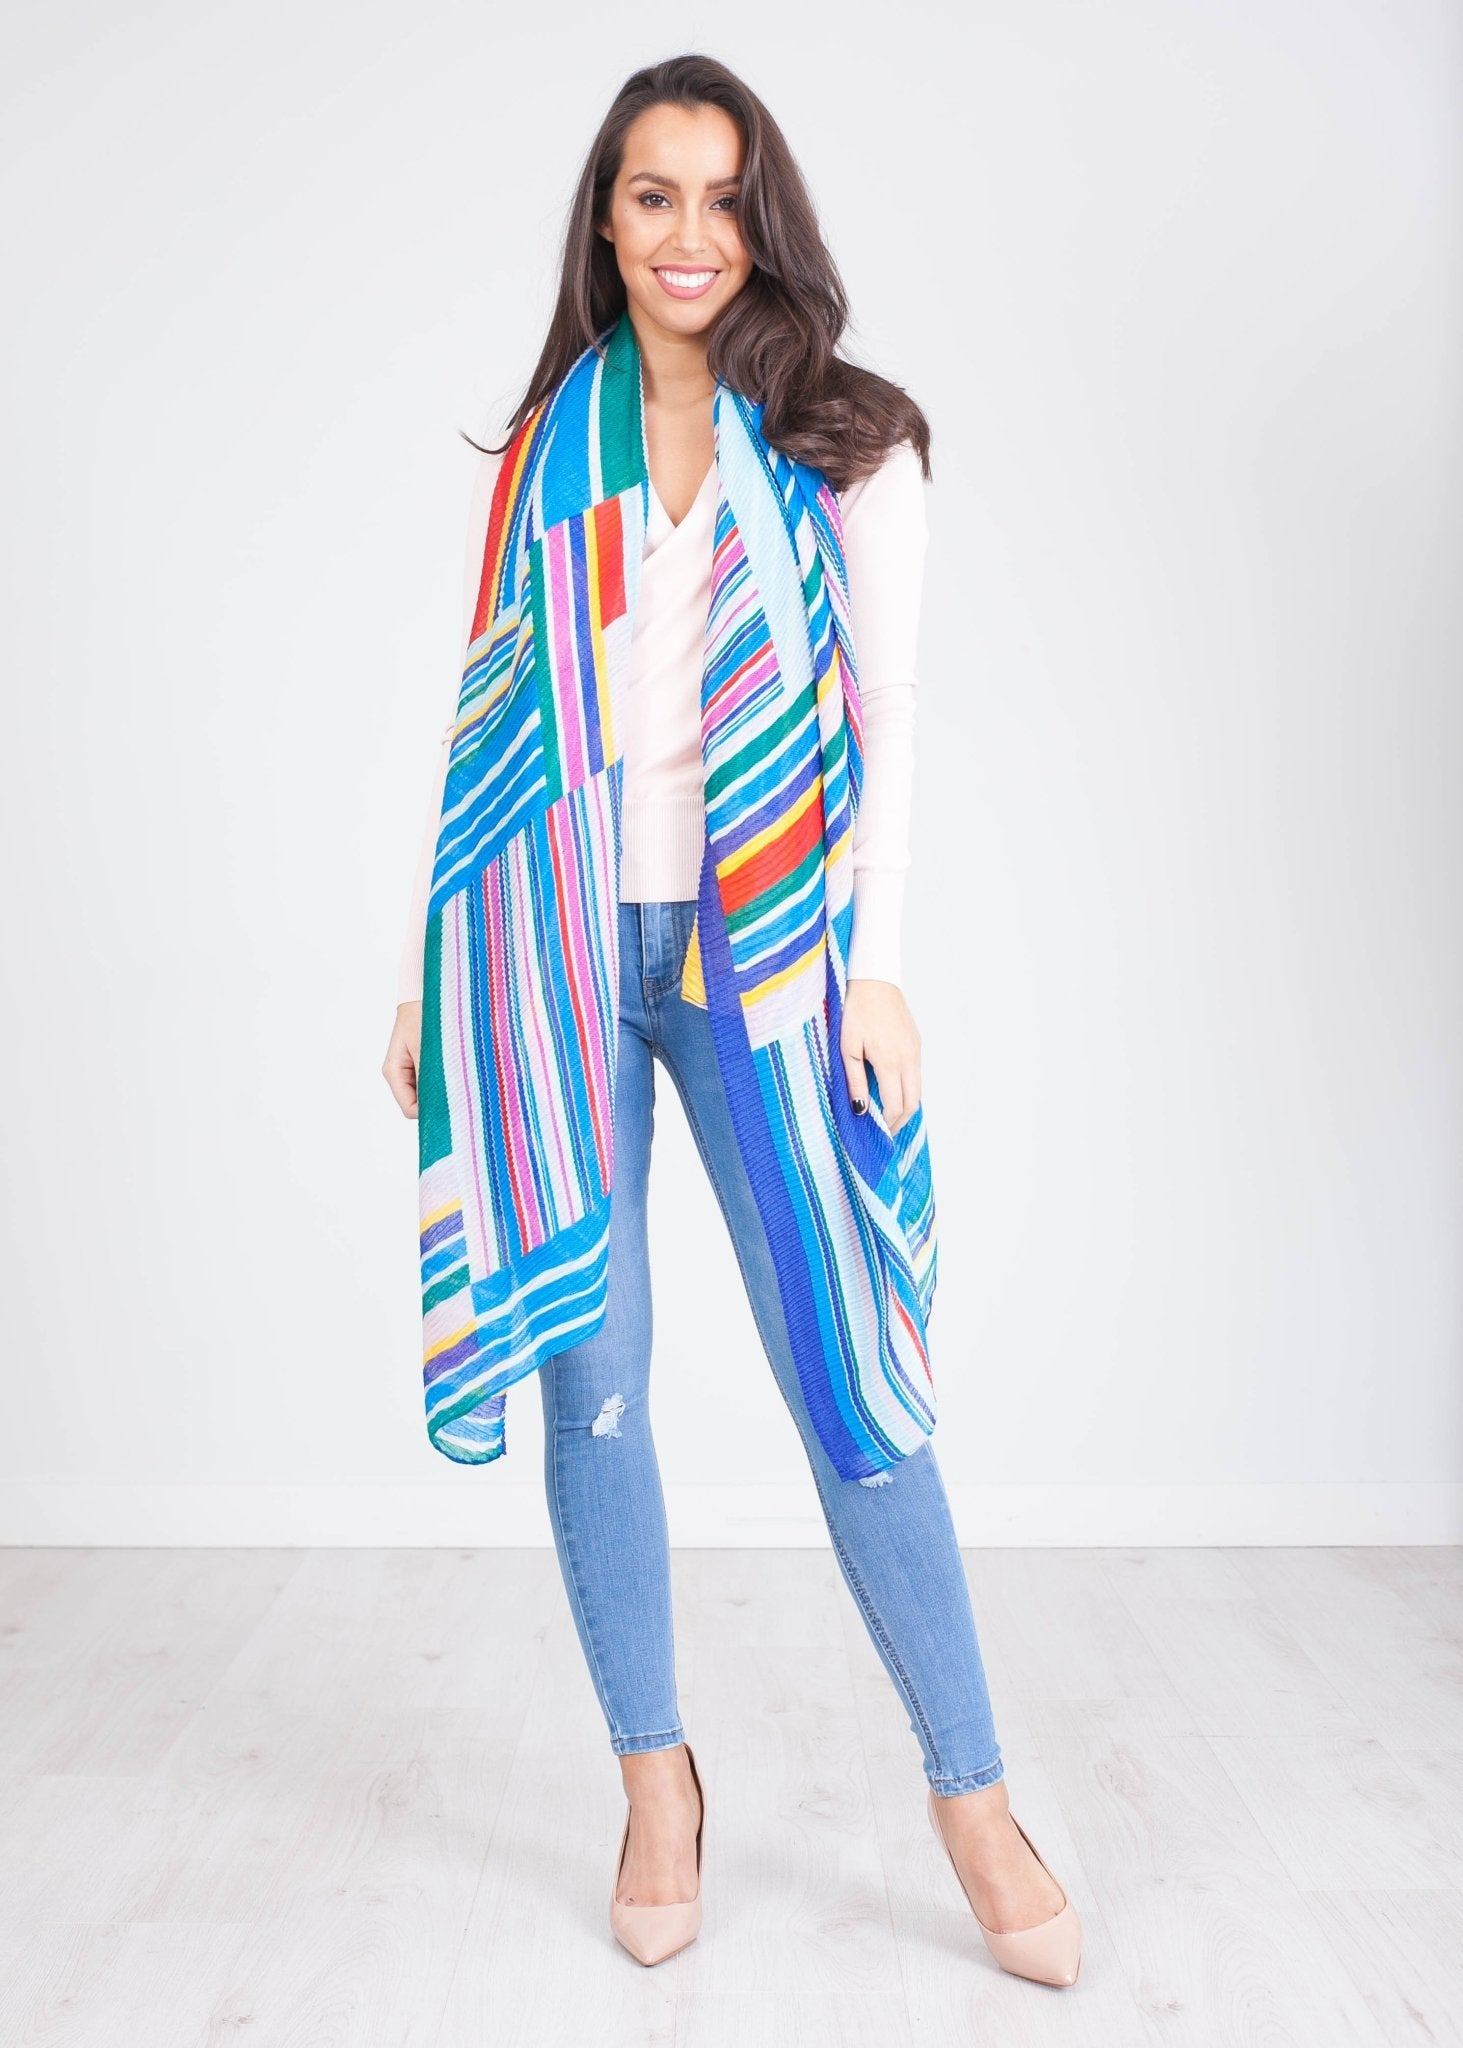 Carly Blue Pattern Scarf - The Walk in Wardrobe